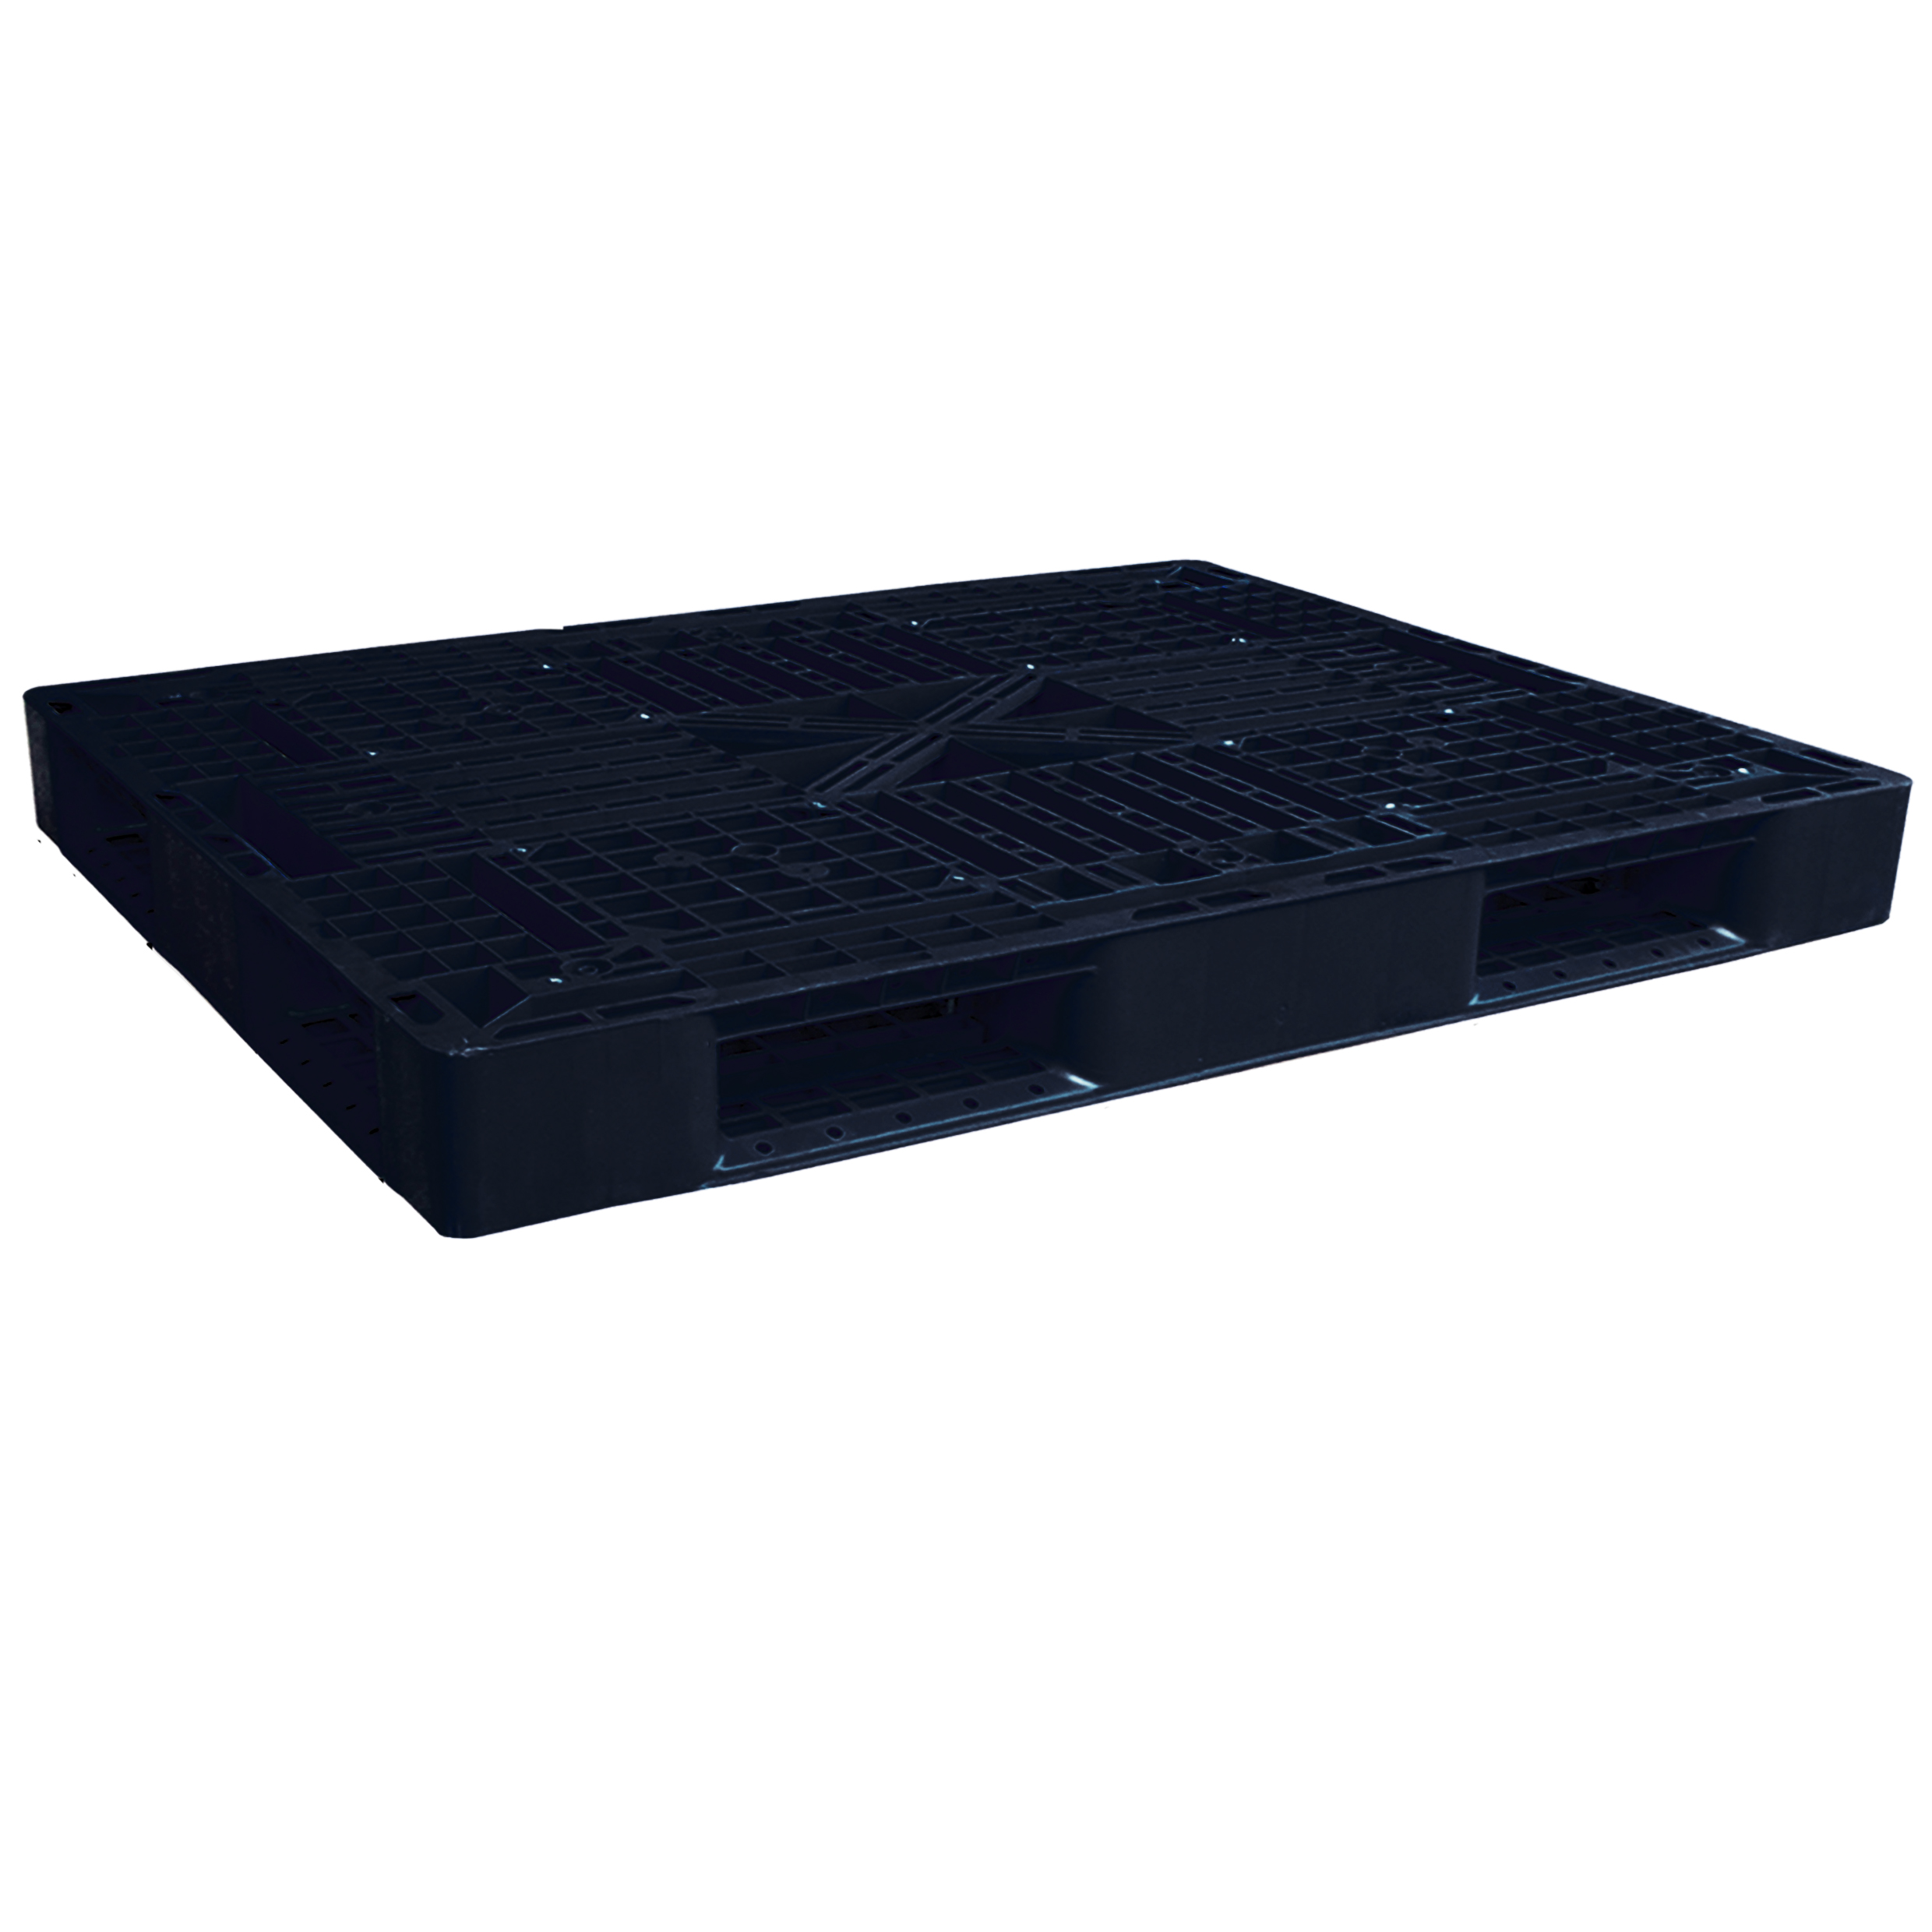 Toyogo Industrial Plastic Pallet P-1114g (pack of 3 Units)